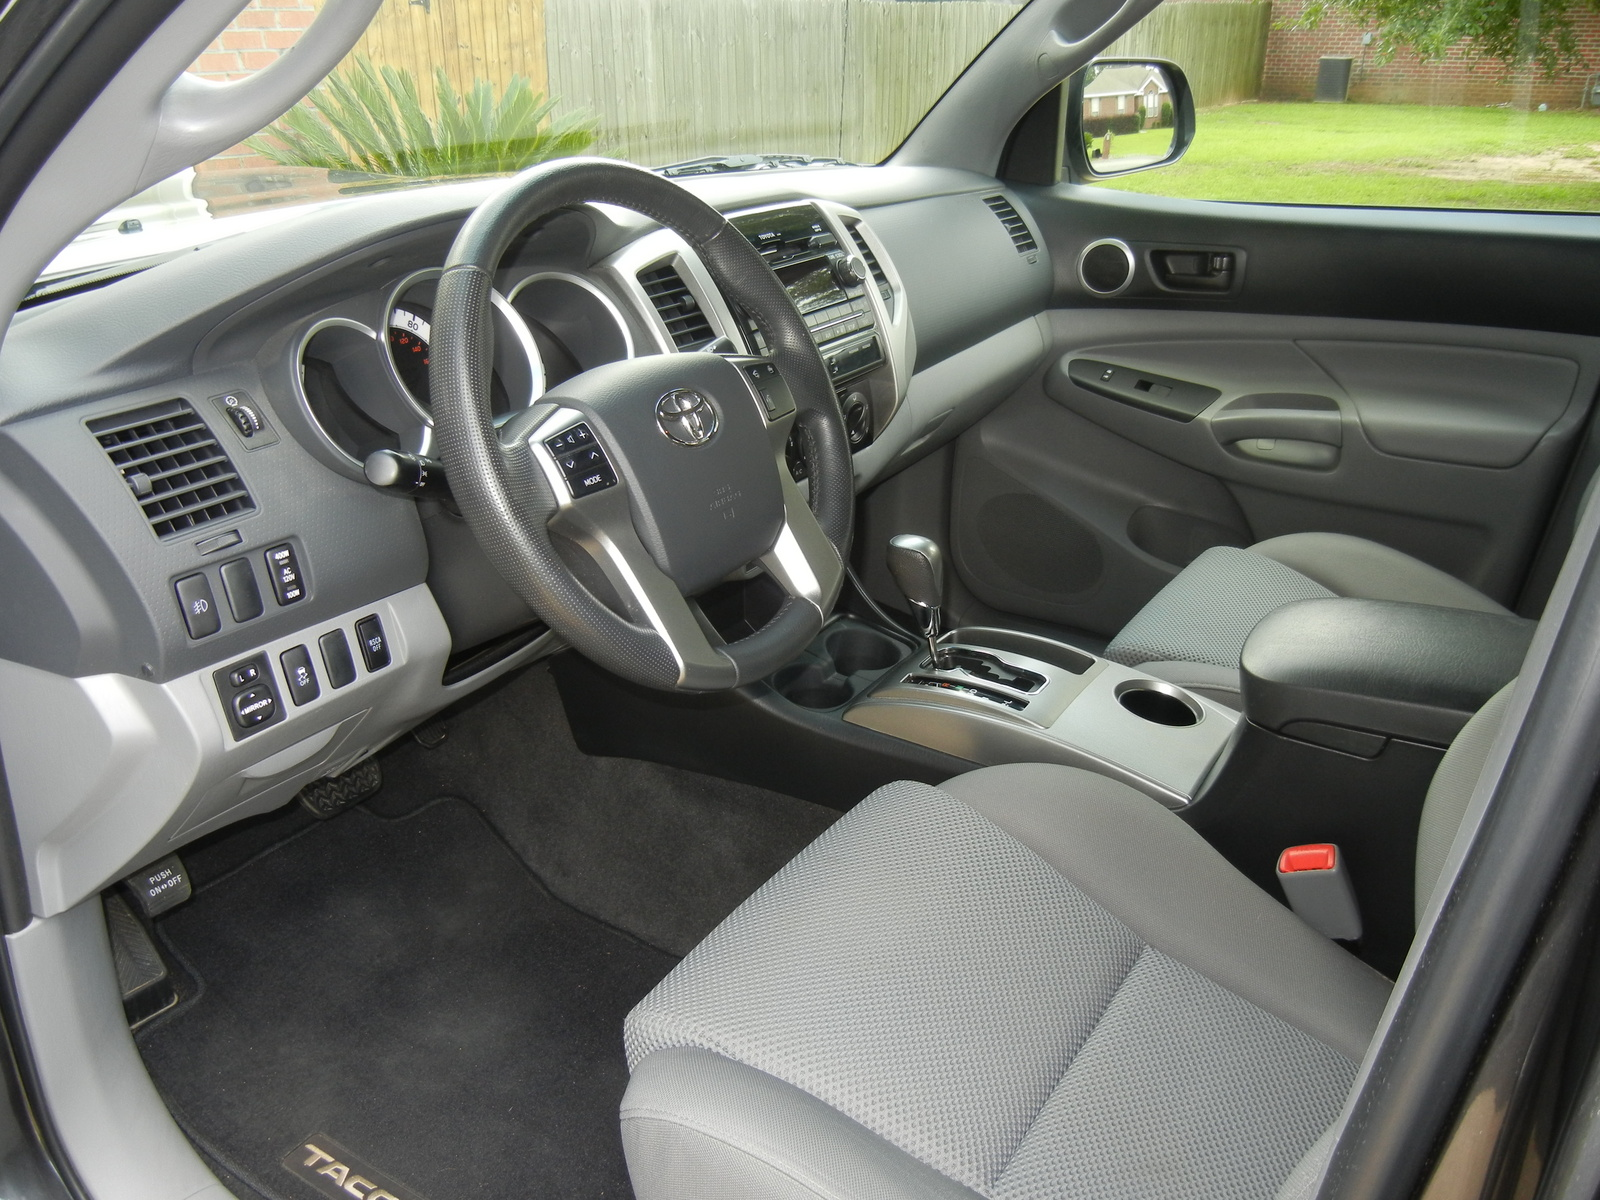 2012 toyota tacoma interior pictures cargurus. Black Bedroom Furniture Sets. Home Design Ideas